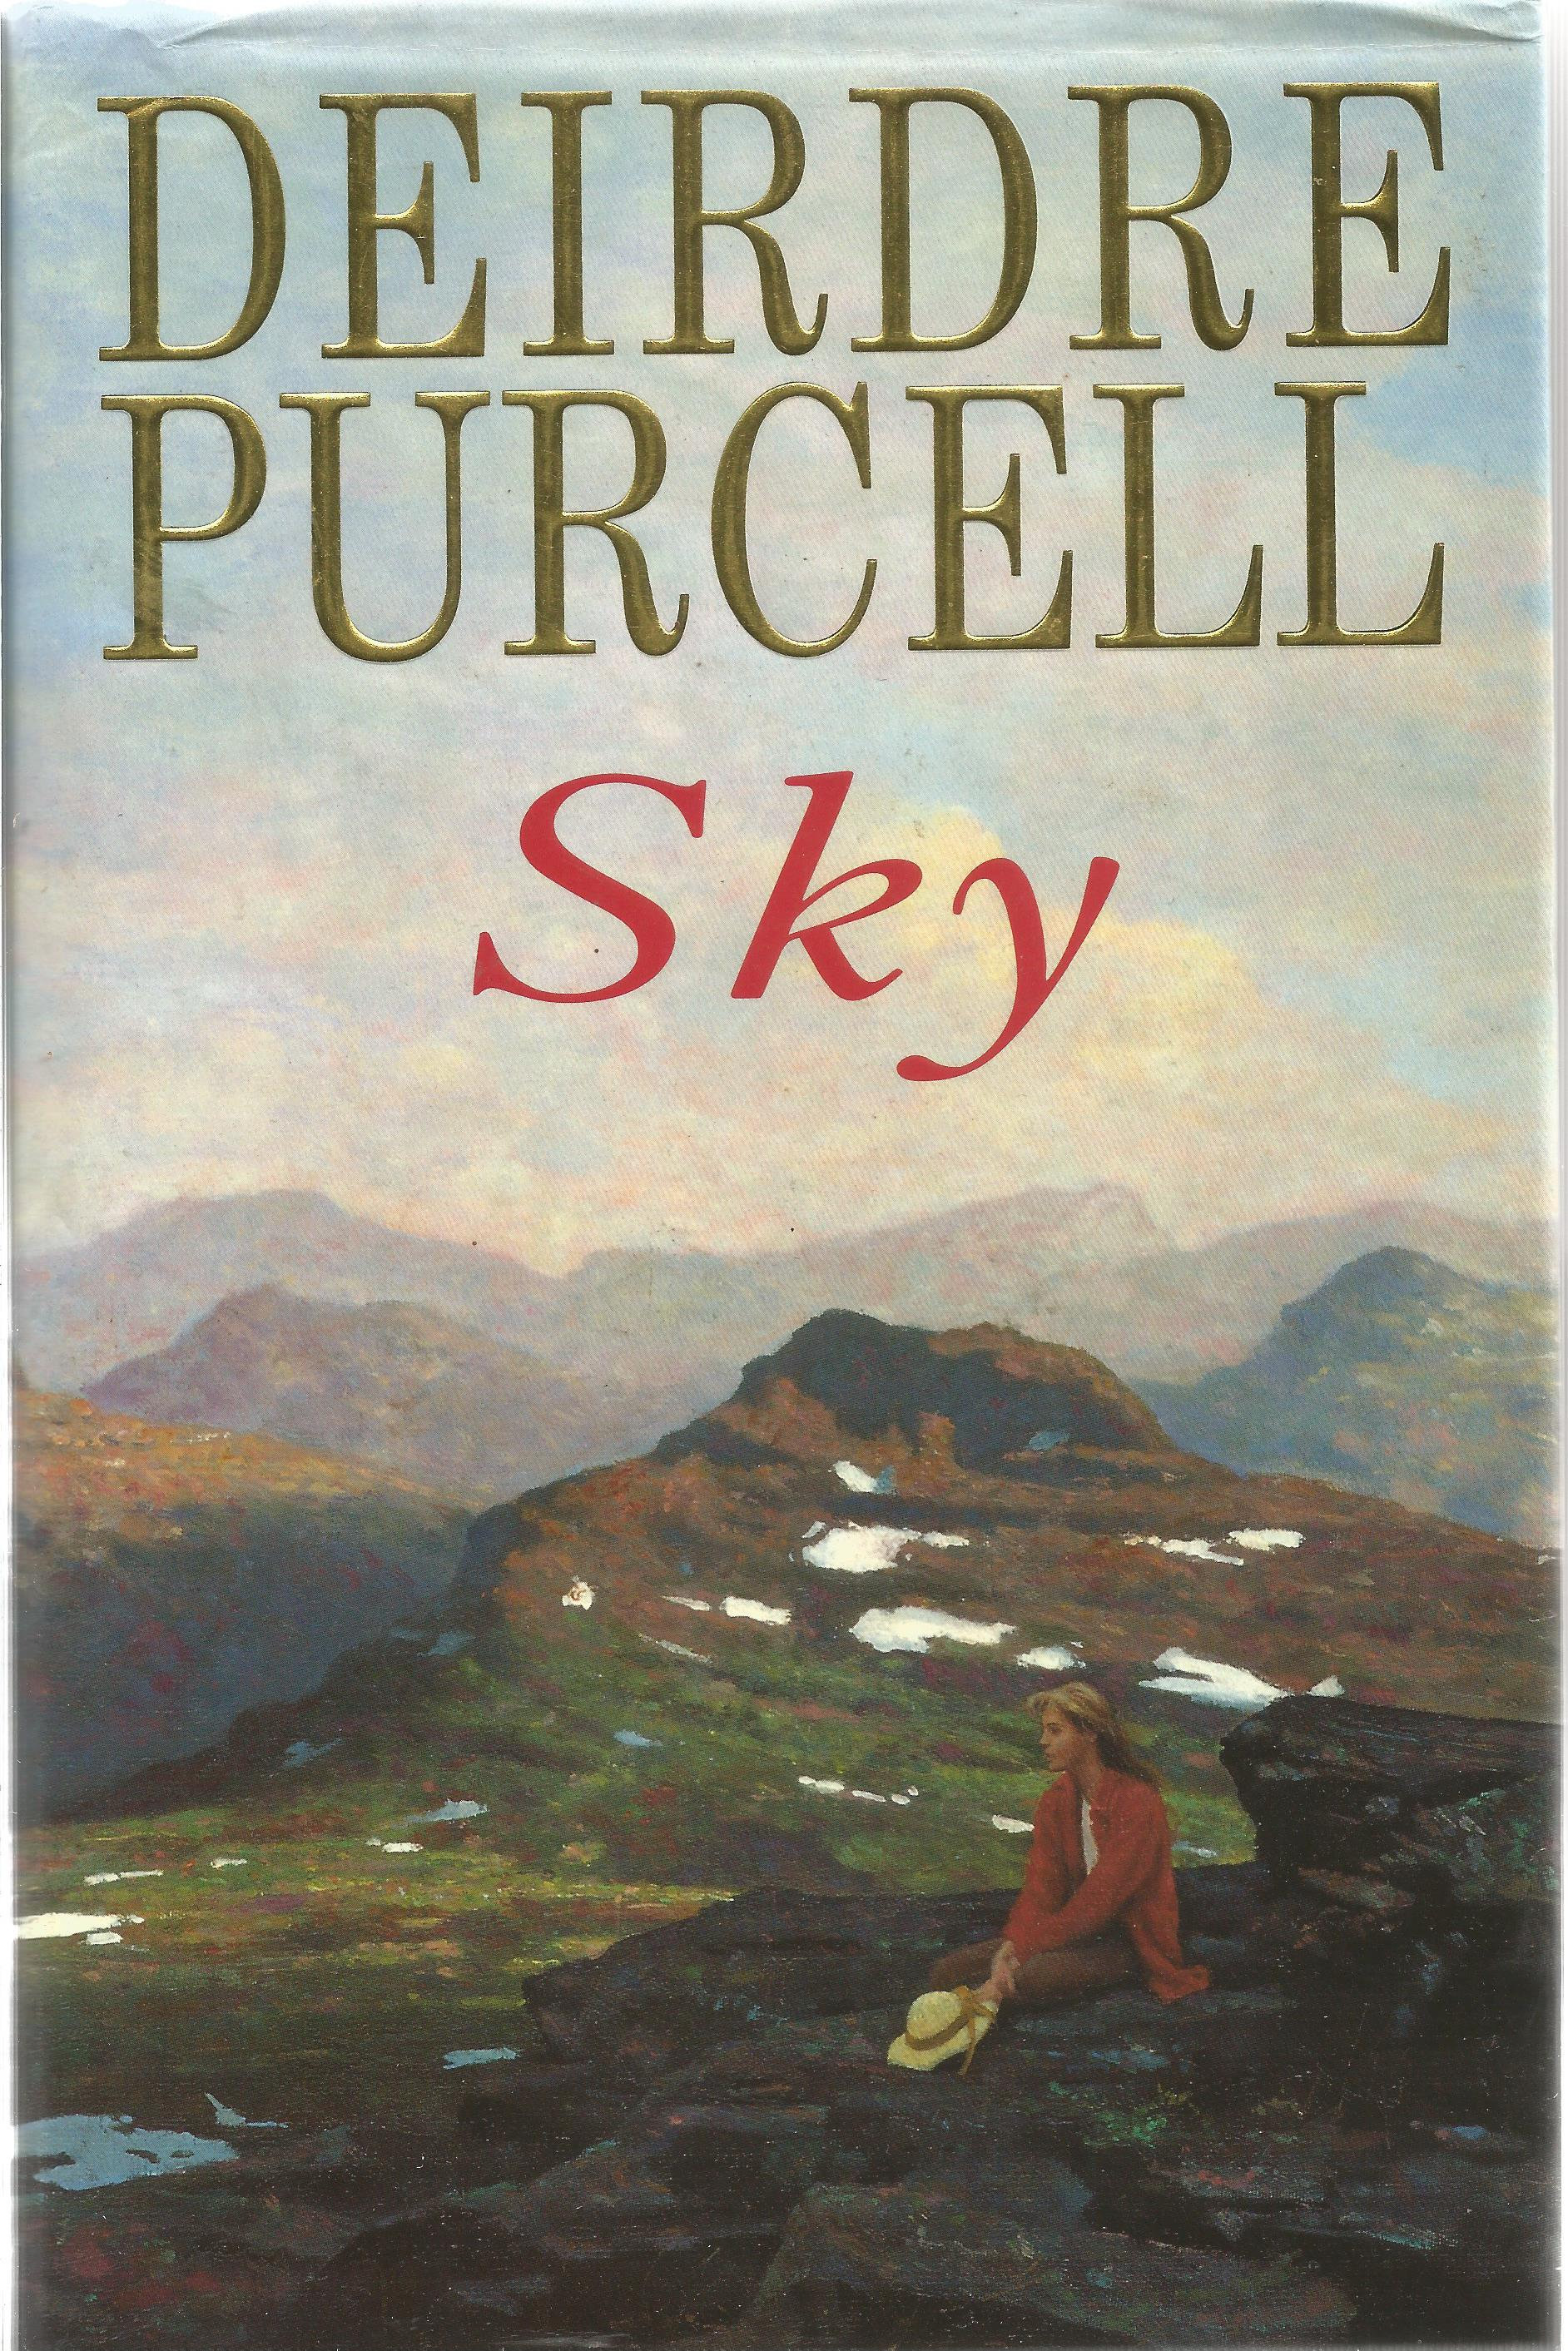 Deirdre Purcell Hardback Book Sky 1995 signed by the Author on the Title Page minor creasing at